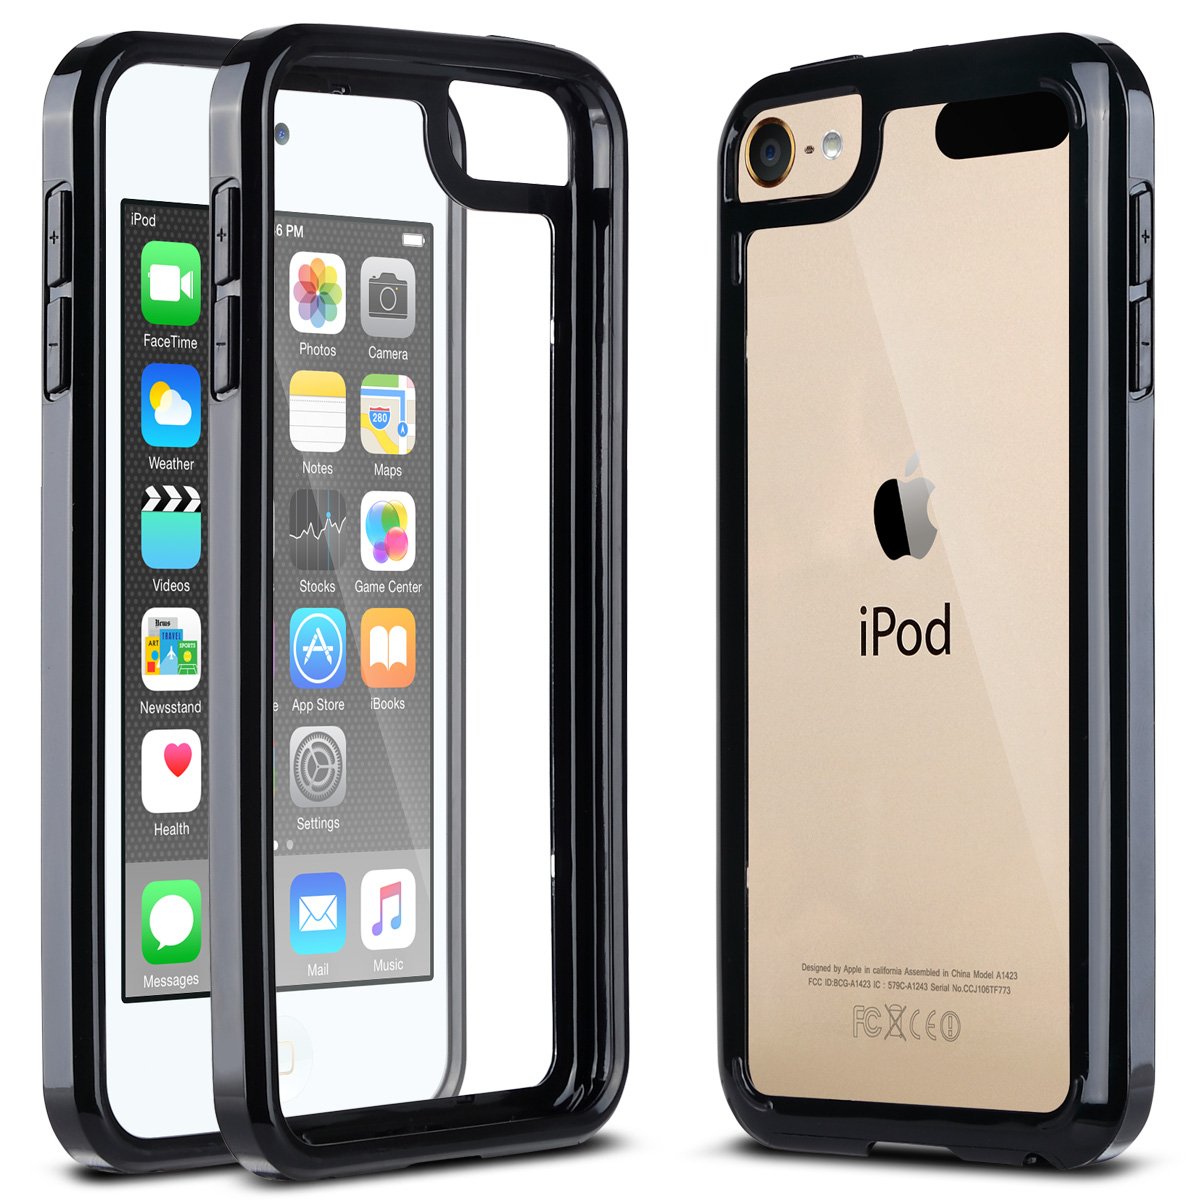 ipod touch 5 cases images galleries with a bite. Black Bedroom Furniture Sets. Home Design Ideas